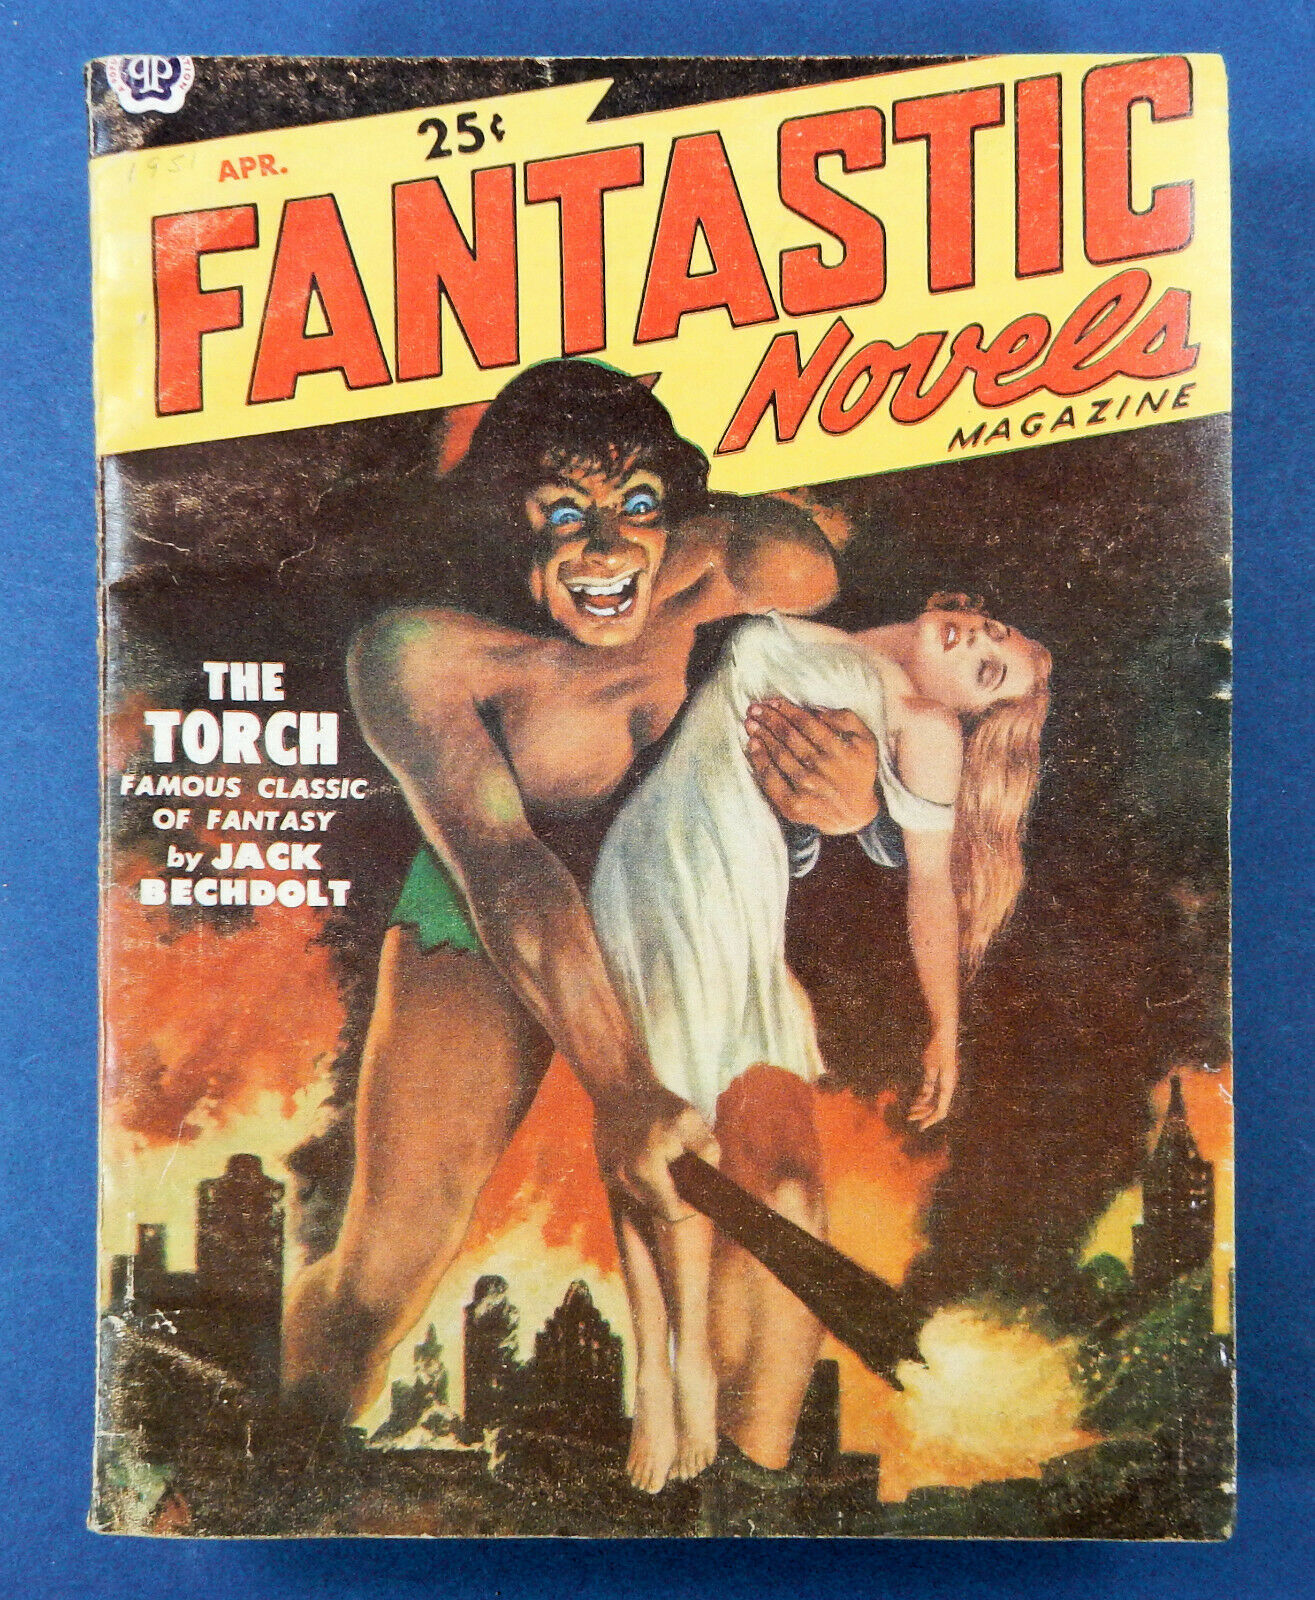 Fantastic Novels Magazine / April 1951 / Sci Fi Pulp / Lawrence Front Cover - $6.50